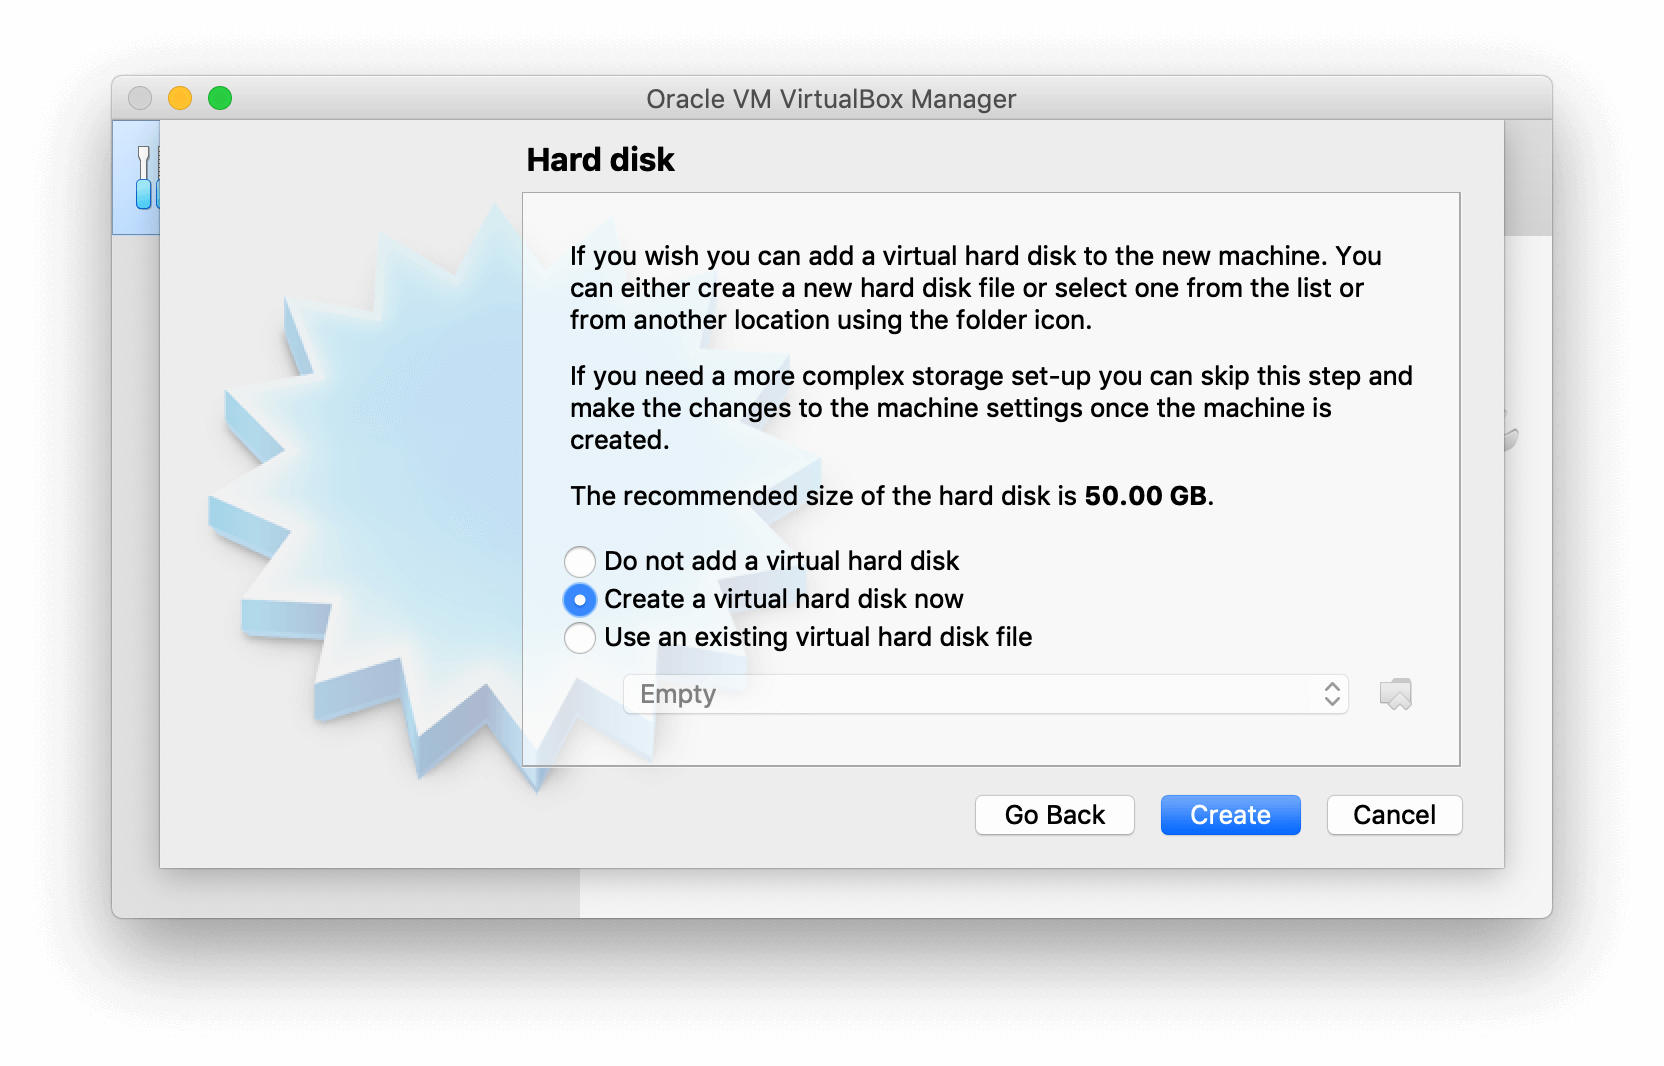 VirtualBox Manager showing options for Hard disk